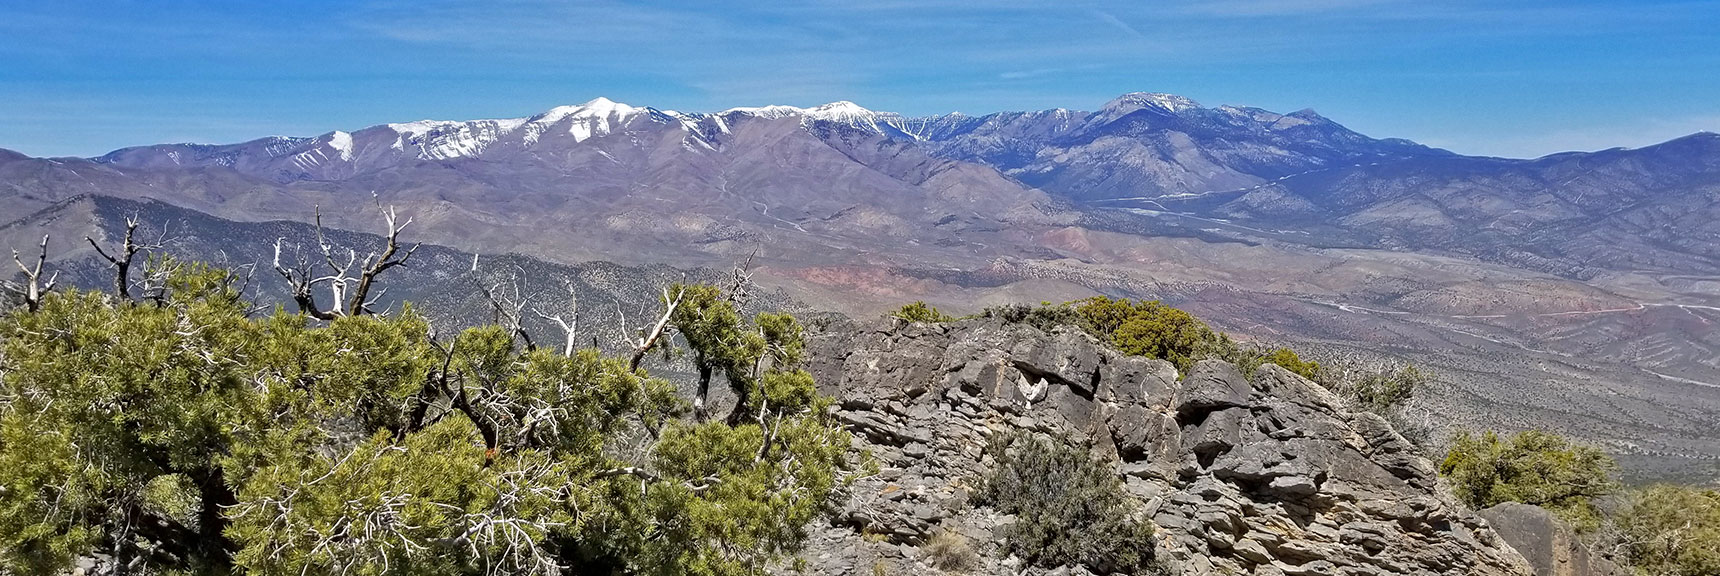 Mt Charleston Wilderness Viewed from the 7400ft High Point on the La Madre Mountain Nevada Northern Approach